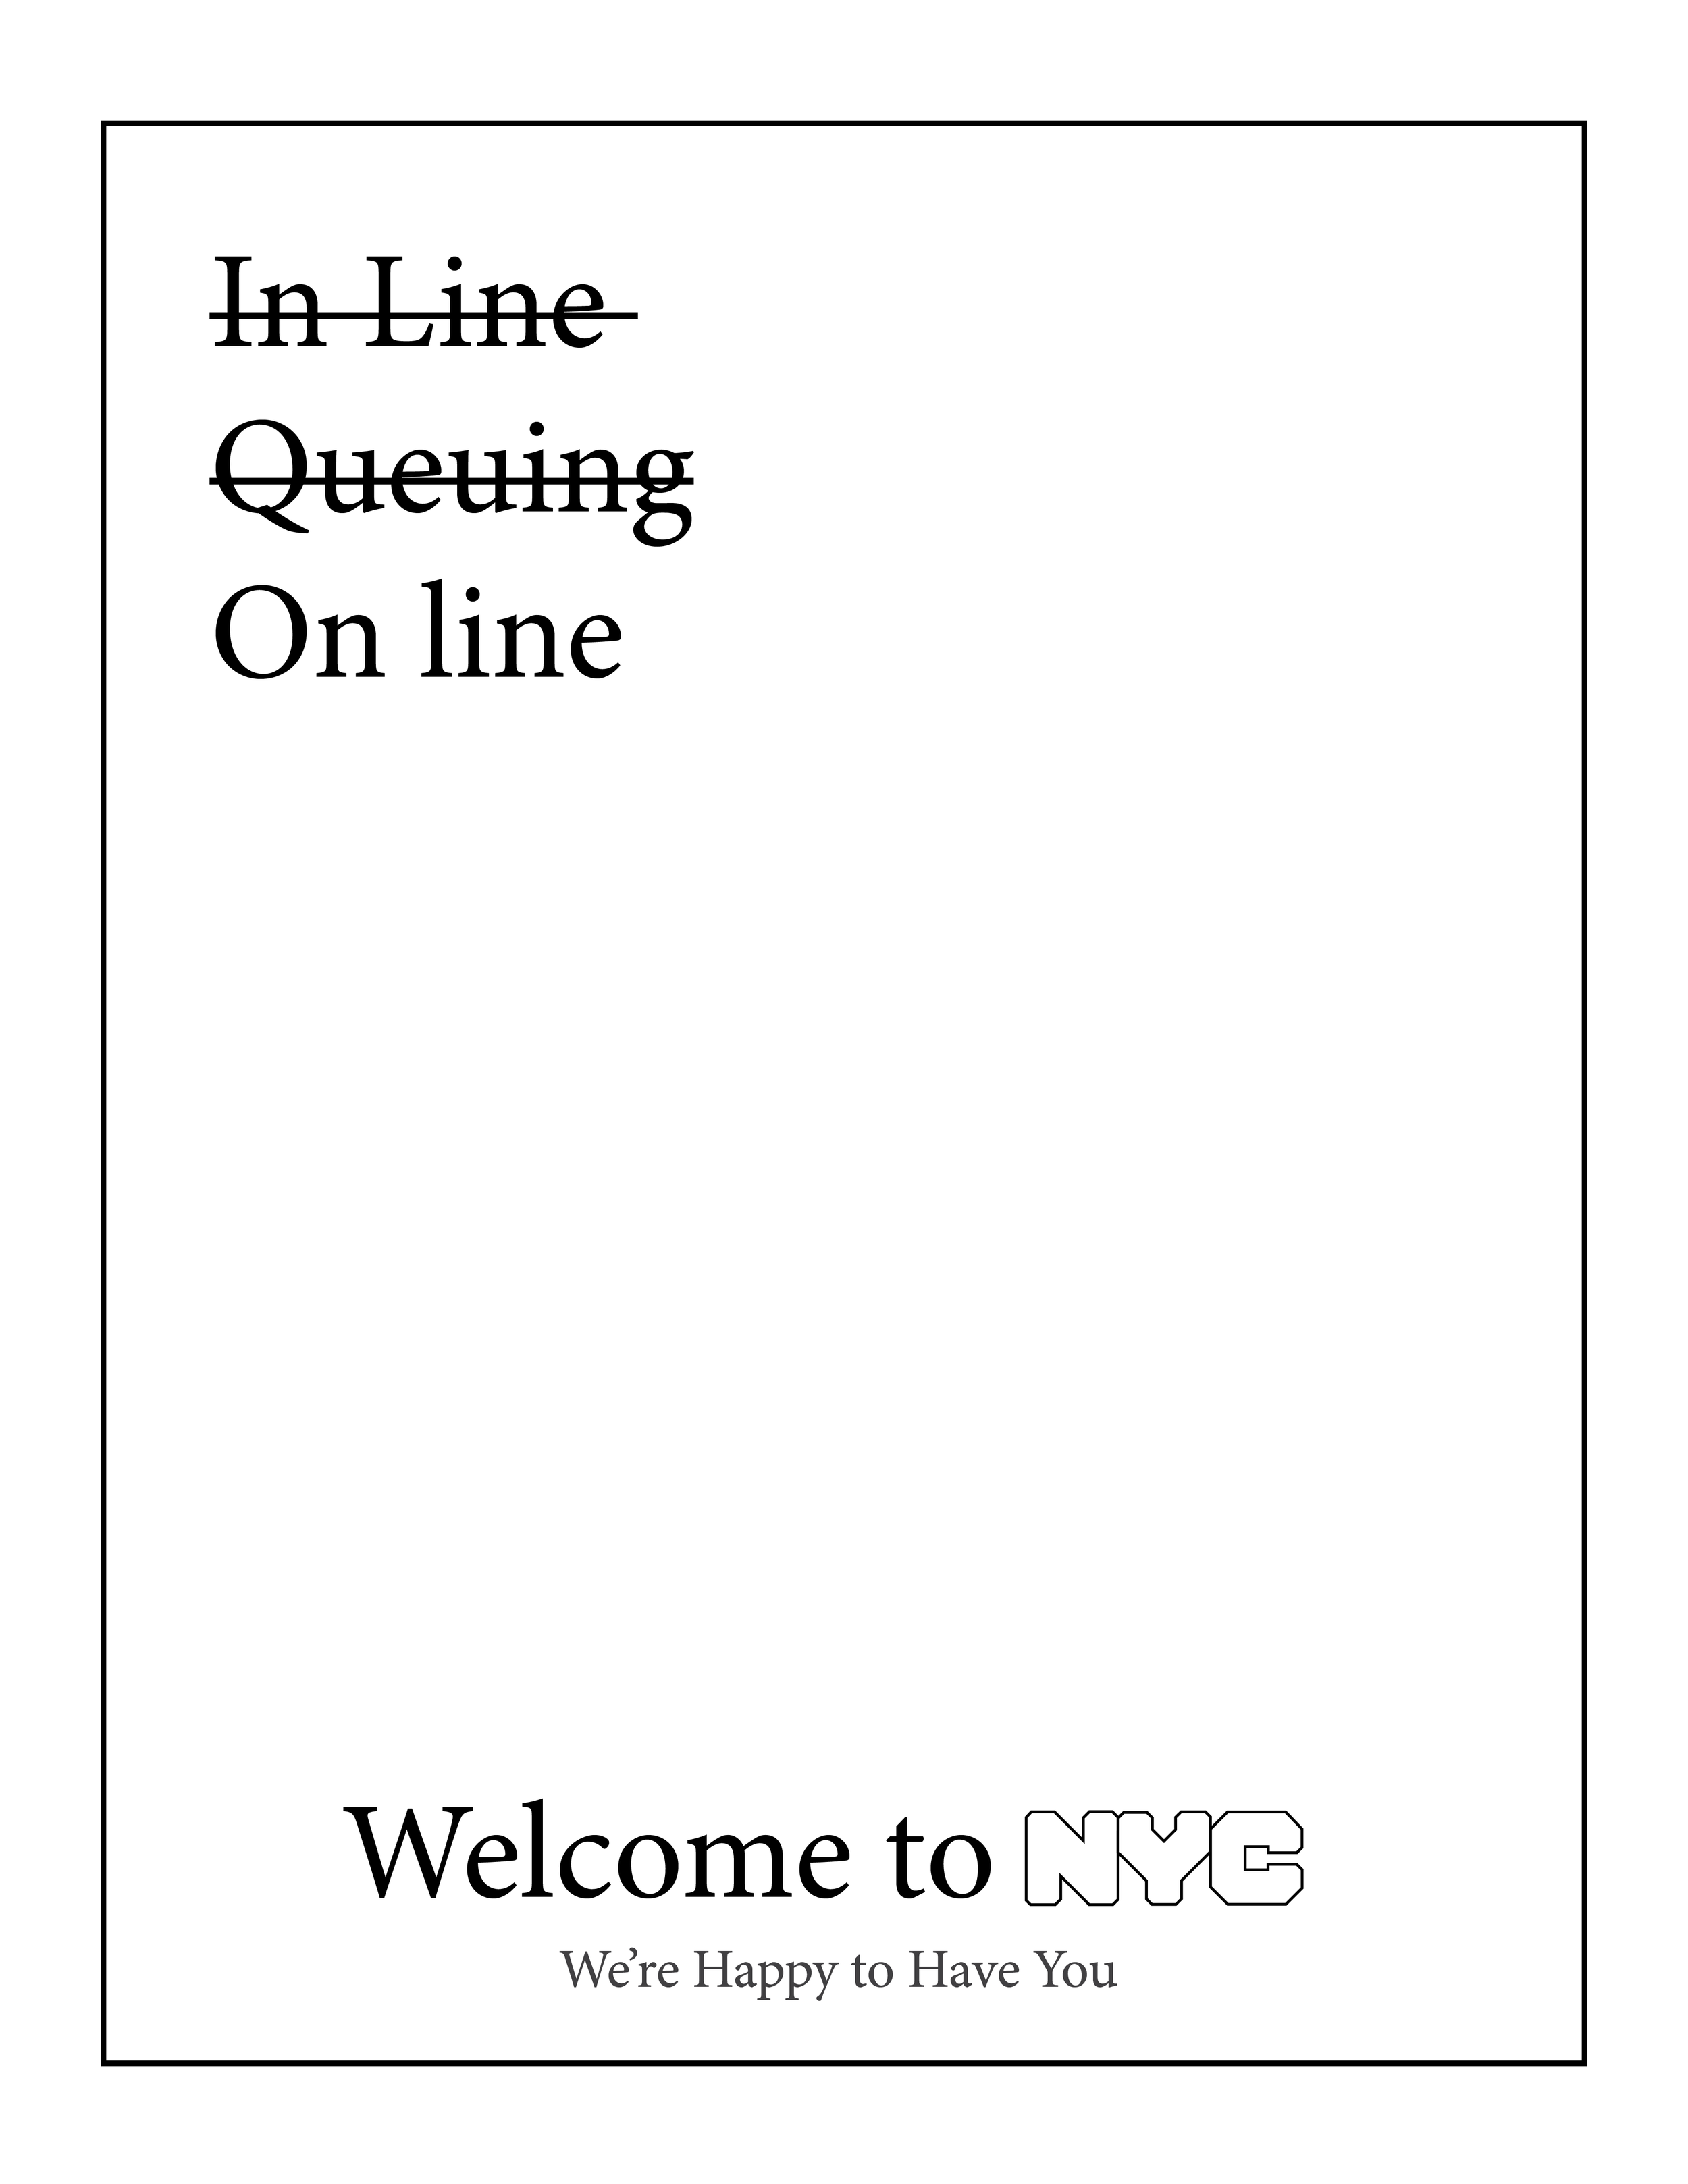 Welcome to NYC We're Happy to Have You - On Line Letter Size.png